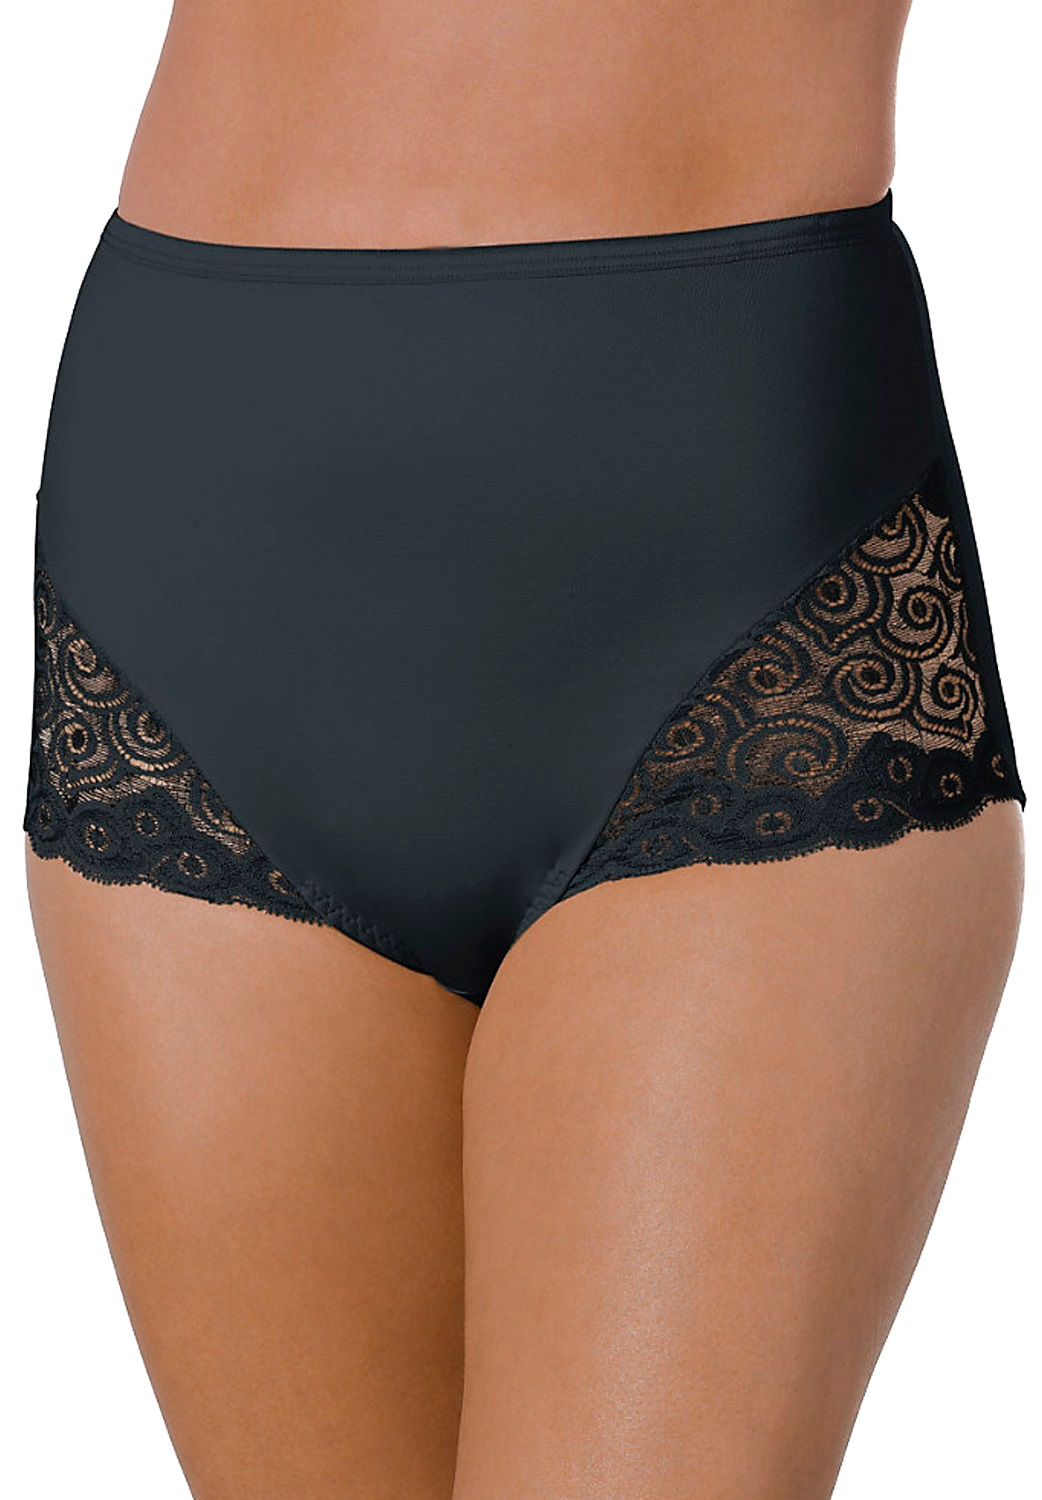 Brief for moderate control, with lace inset, 2 pack by Bali®,